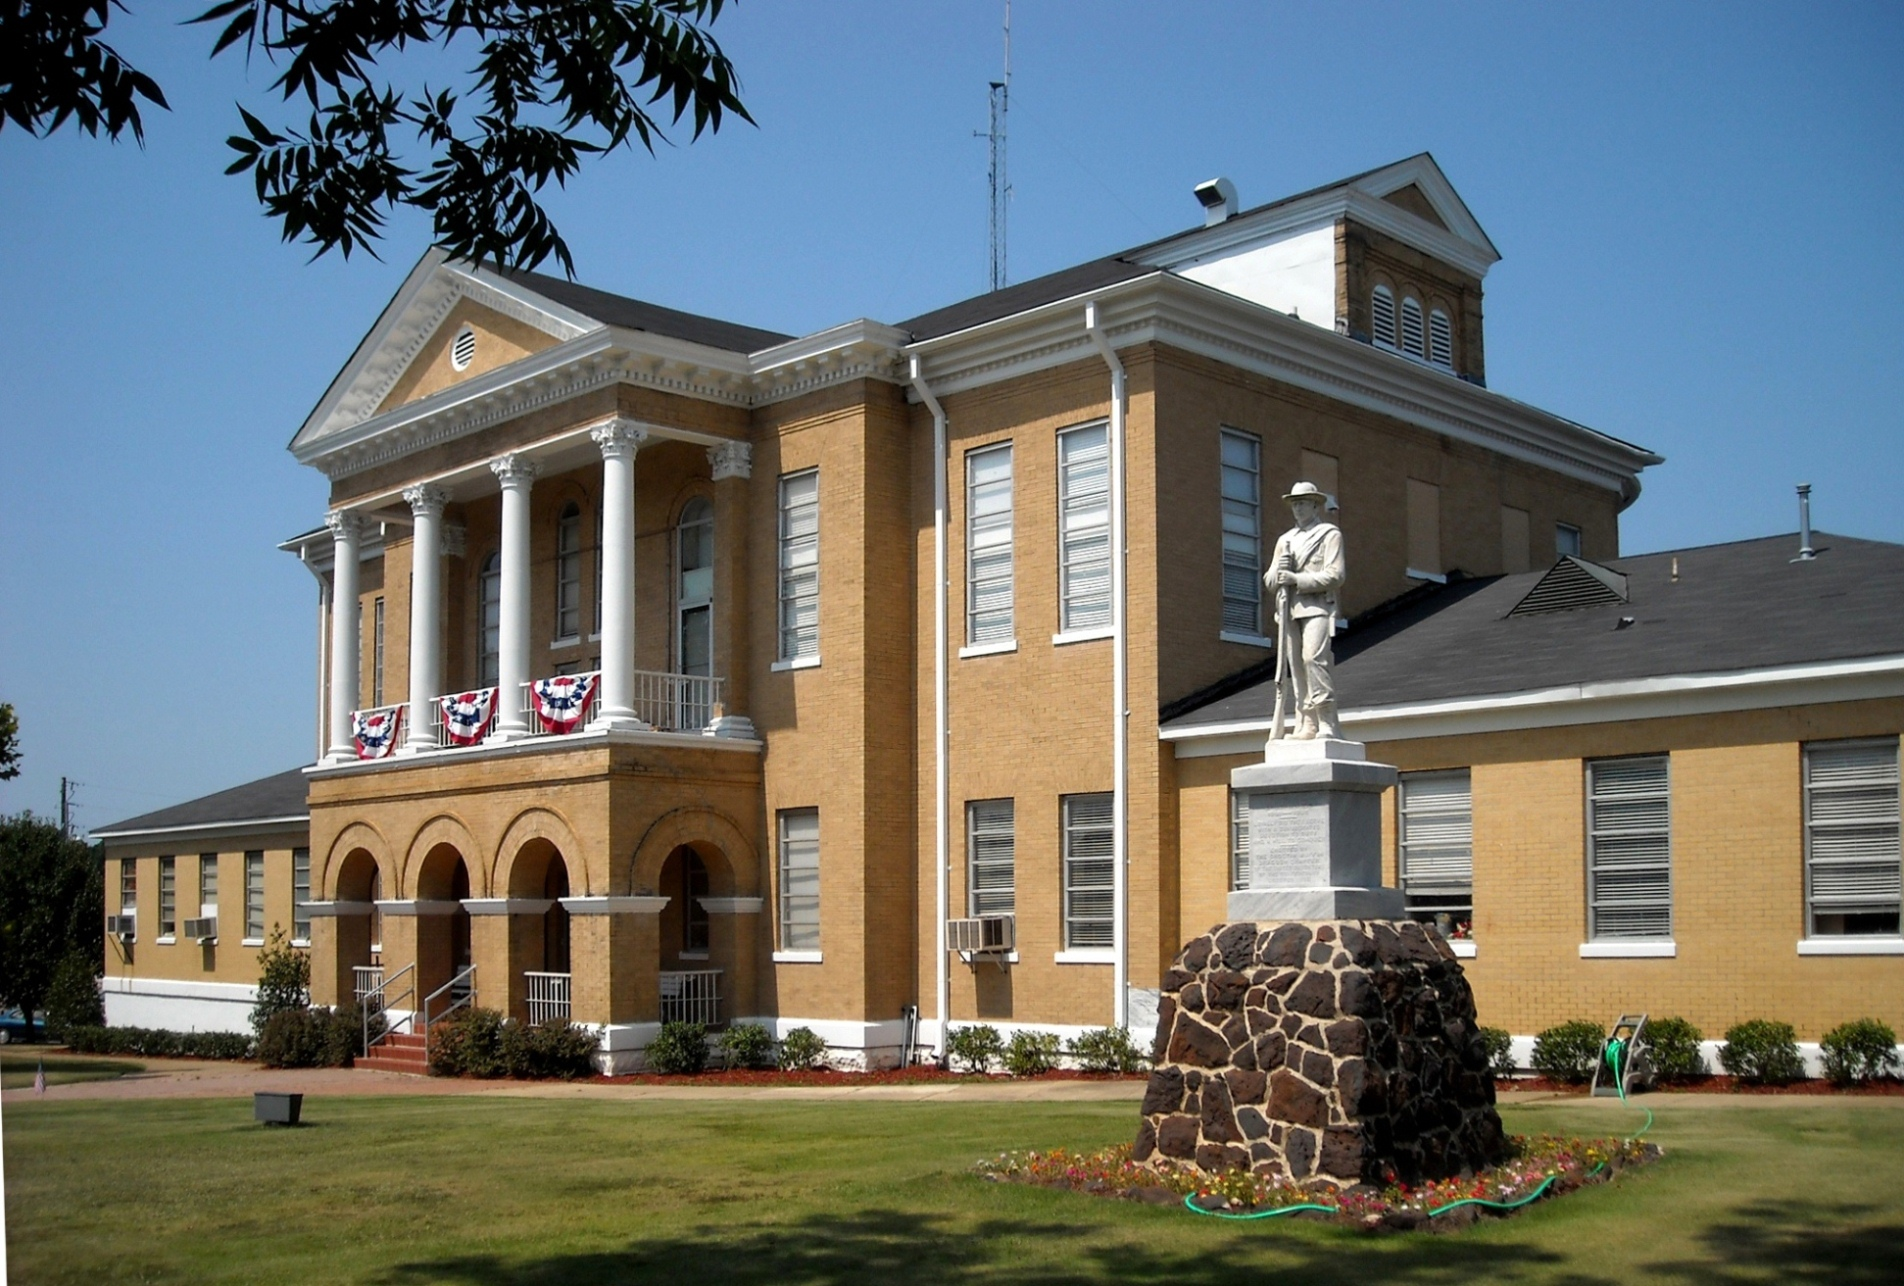 File:Choctaw County Alabama Courthouse.jpg - Wikimedia Commonsbalance of choctaw county